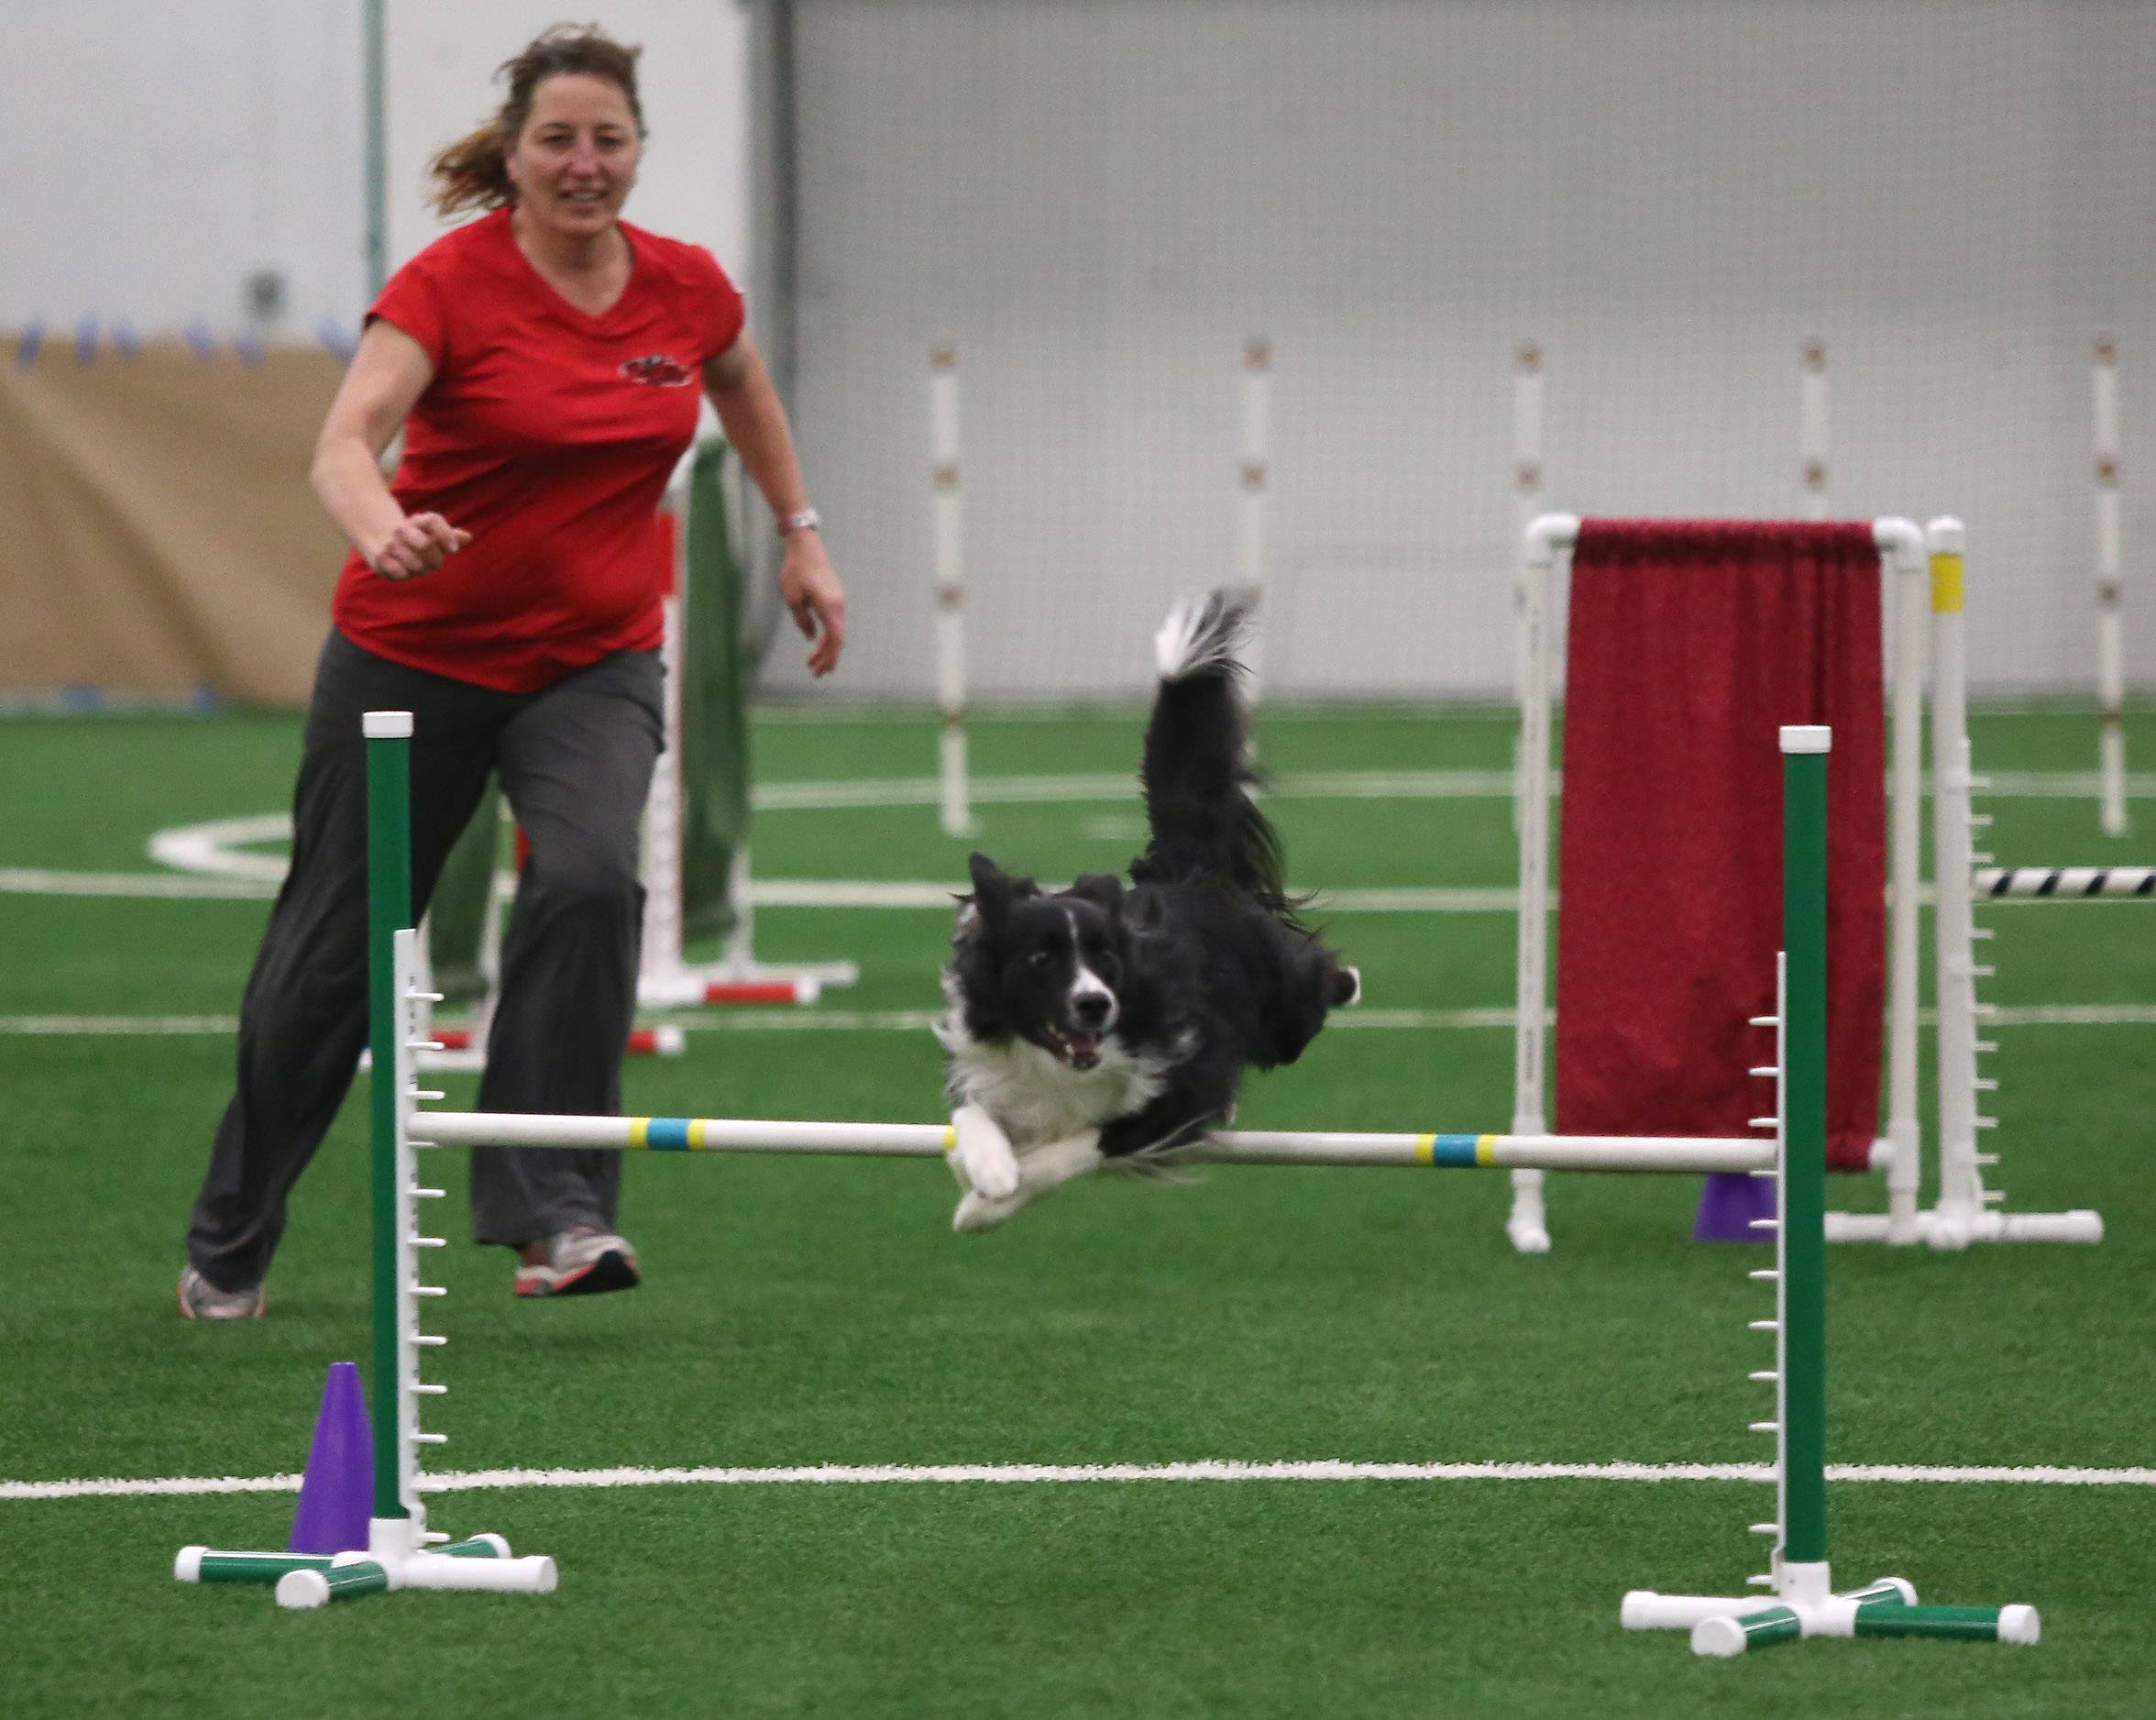 Des Plaines resident Sue Rolek and her border collie, Ignite, run through the obstacle course during the Wisconsin-Illinois Agility Group competition Sunday at the Libertyville Sports Complex. Hundreds of dogs and their handlers competed on the obstacle courses to test obedience and skill.